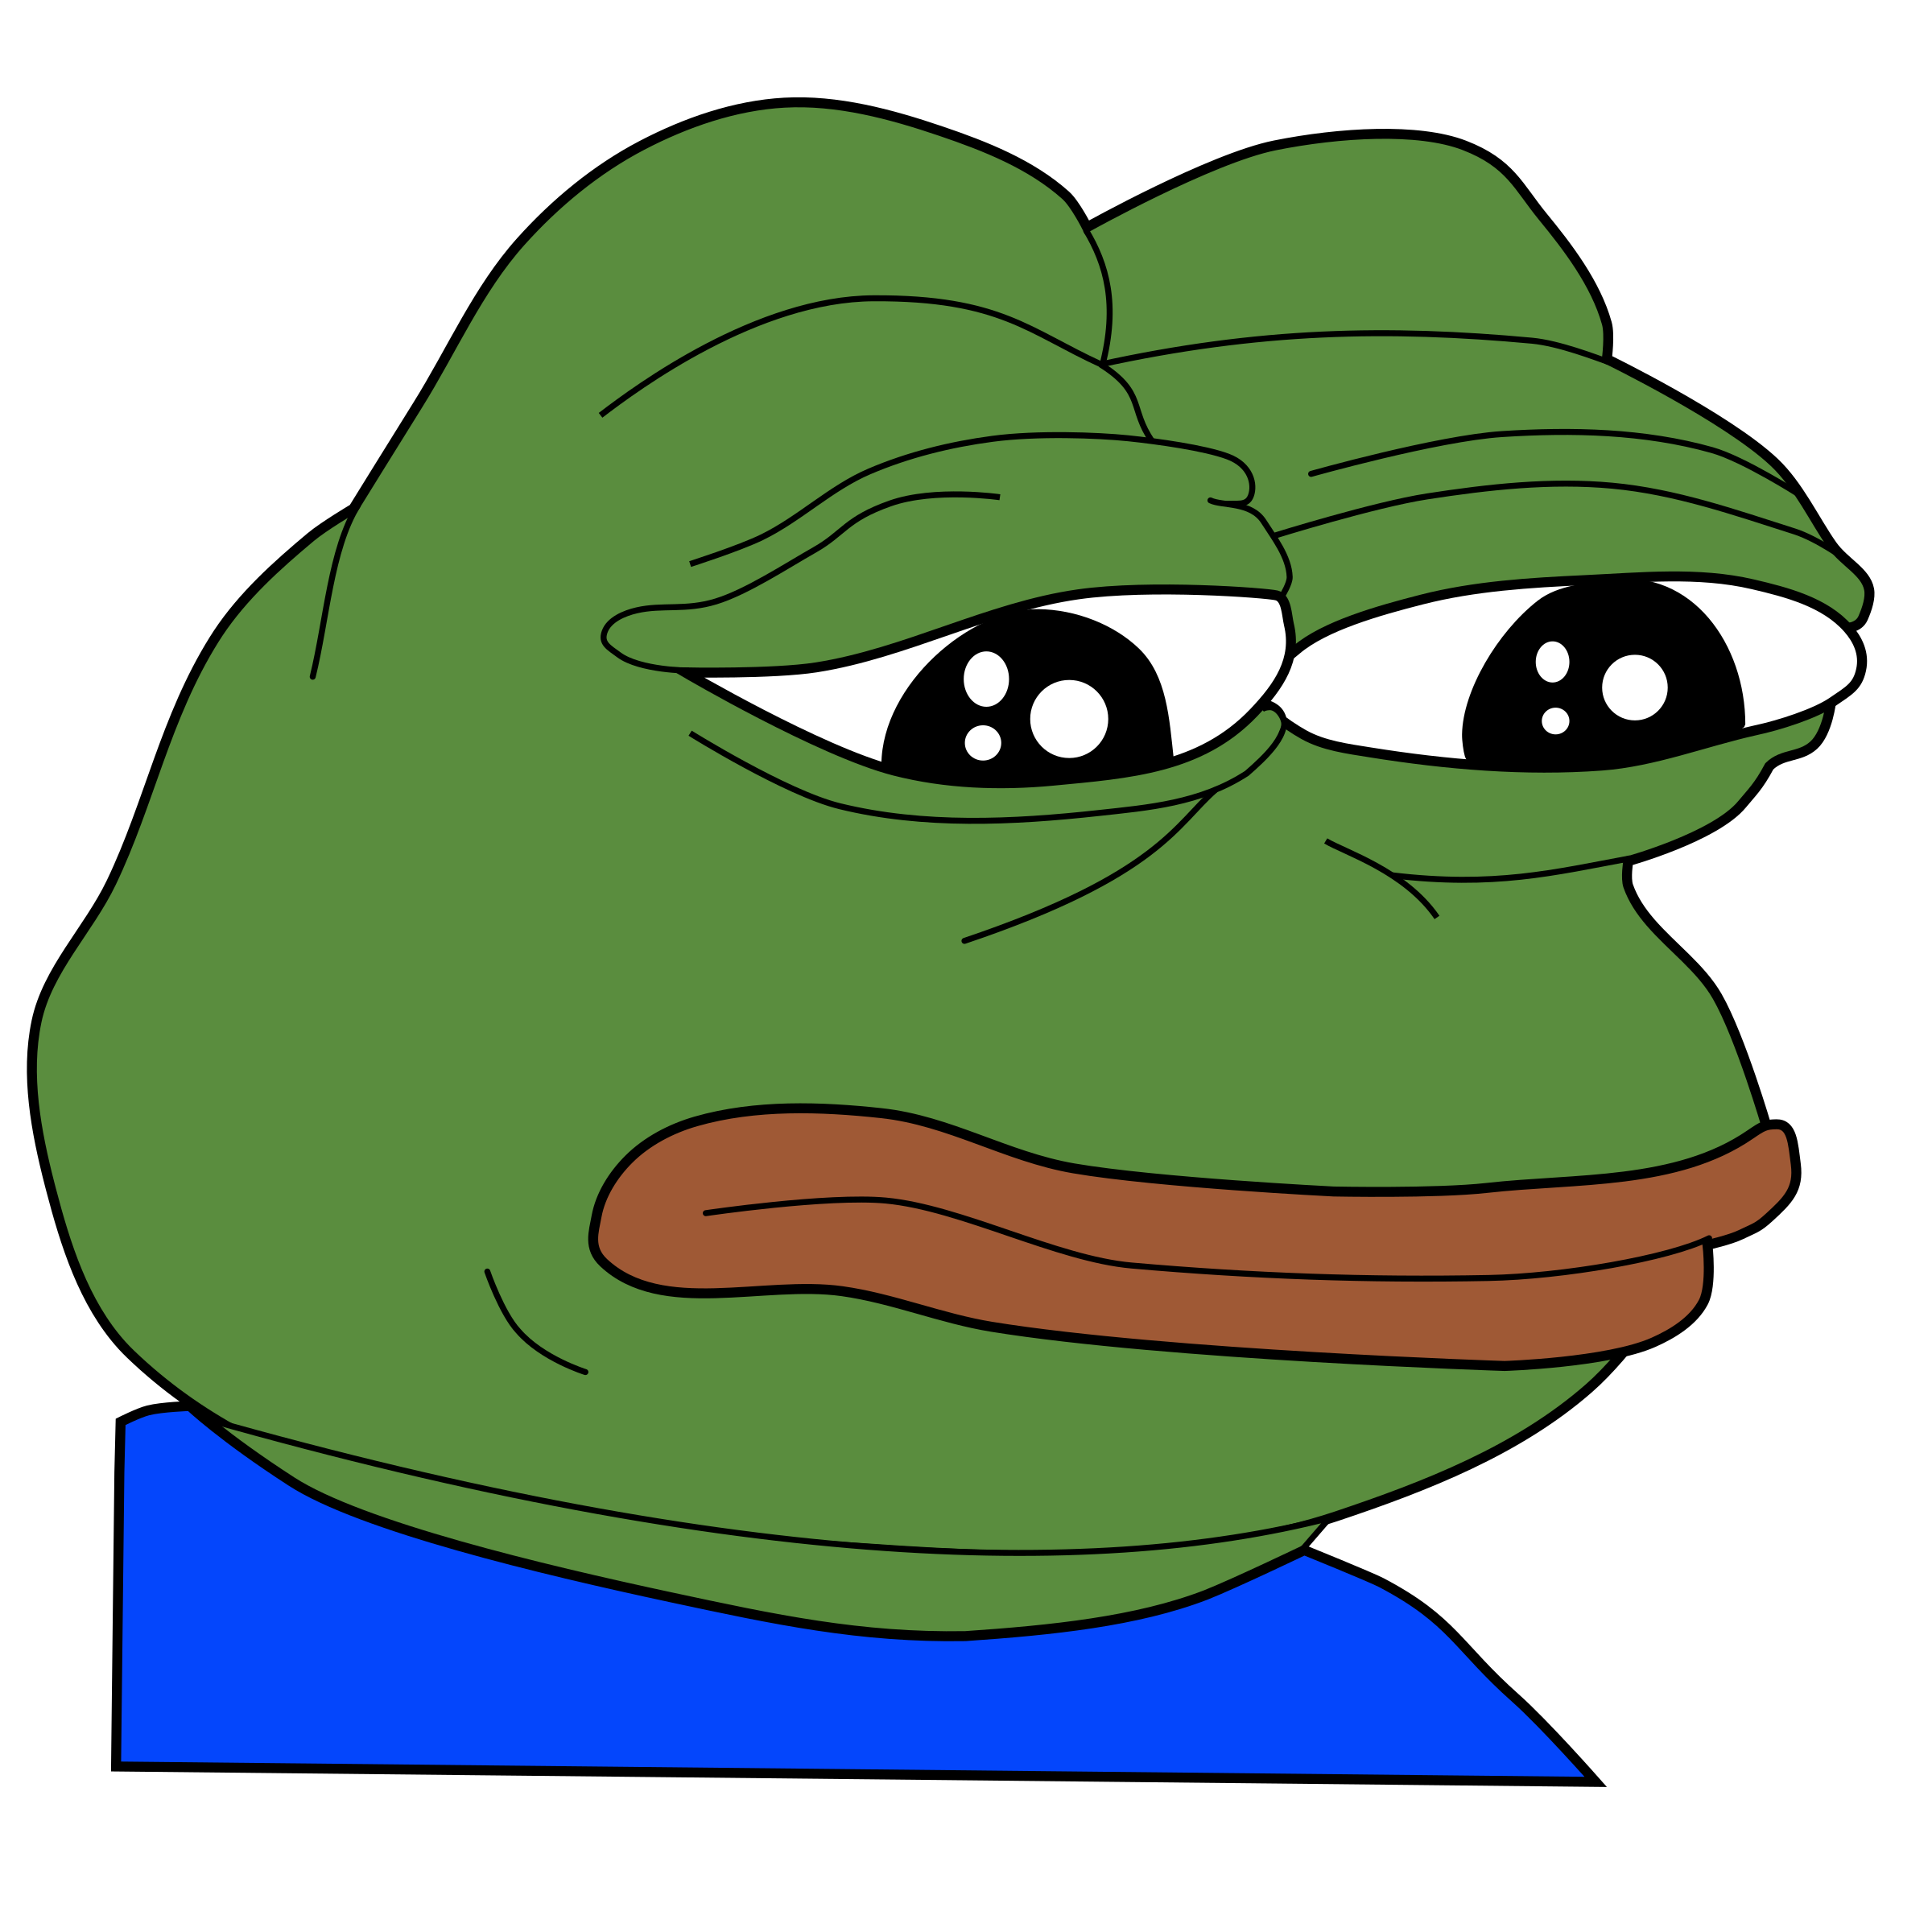 Feels bad man png. Sad frog meme icons